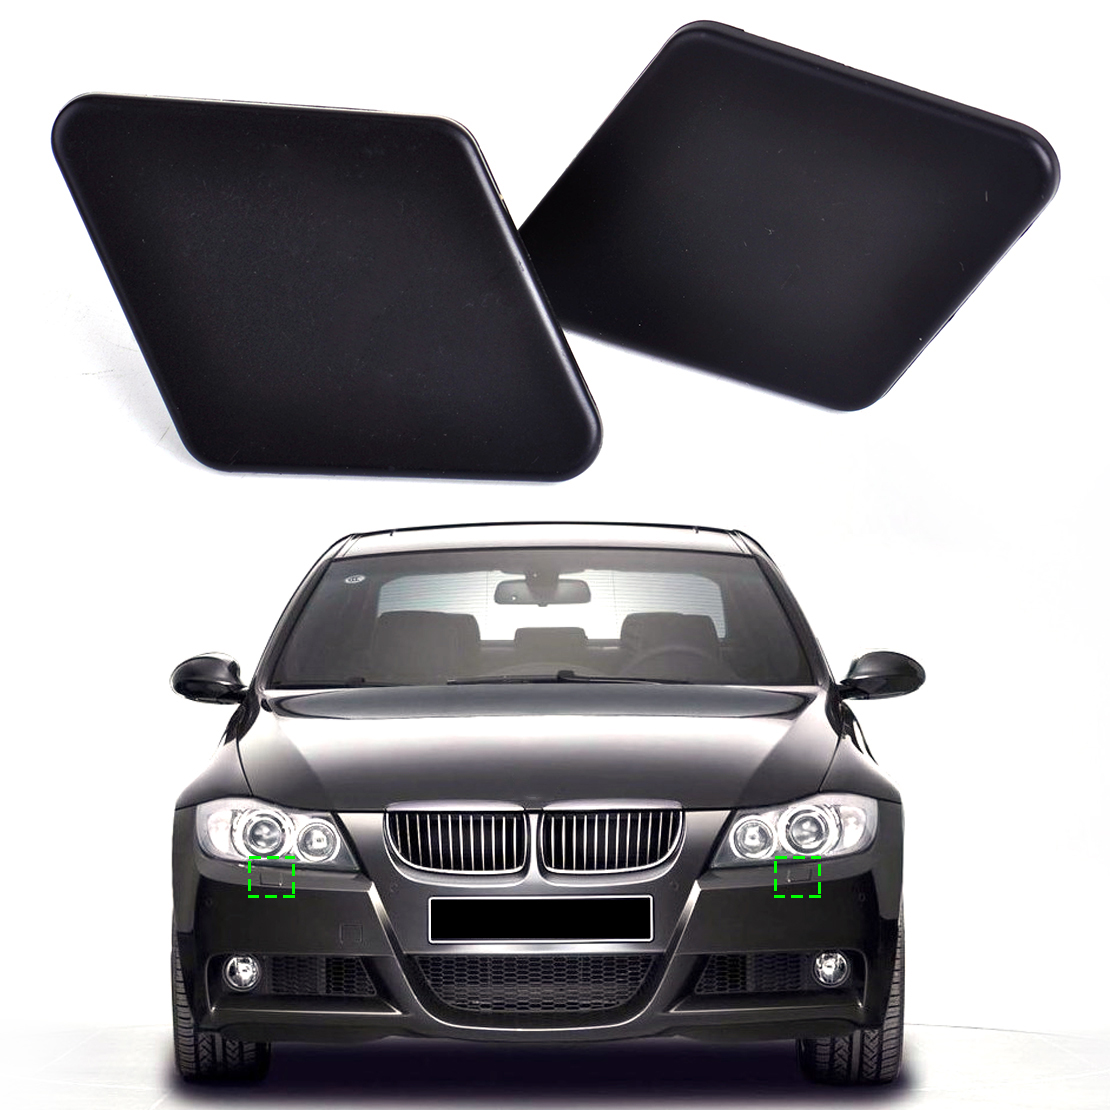 beler 1Pair Front Bumper Headlight Washer Nozzle Cover <font><b>Cap</b></font> 61678031307 61678031308 for <font><b>BMW</b></font> 3 Series <font><b>E90</b></font> 2005 2006 2007 2008 2009 image